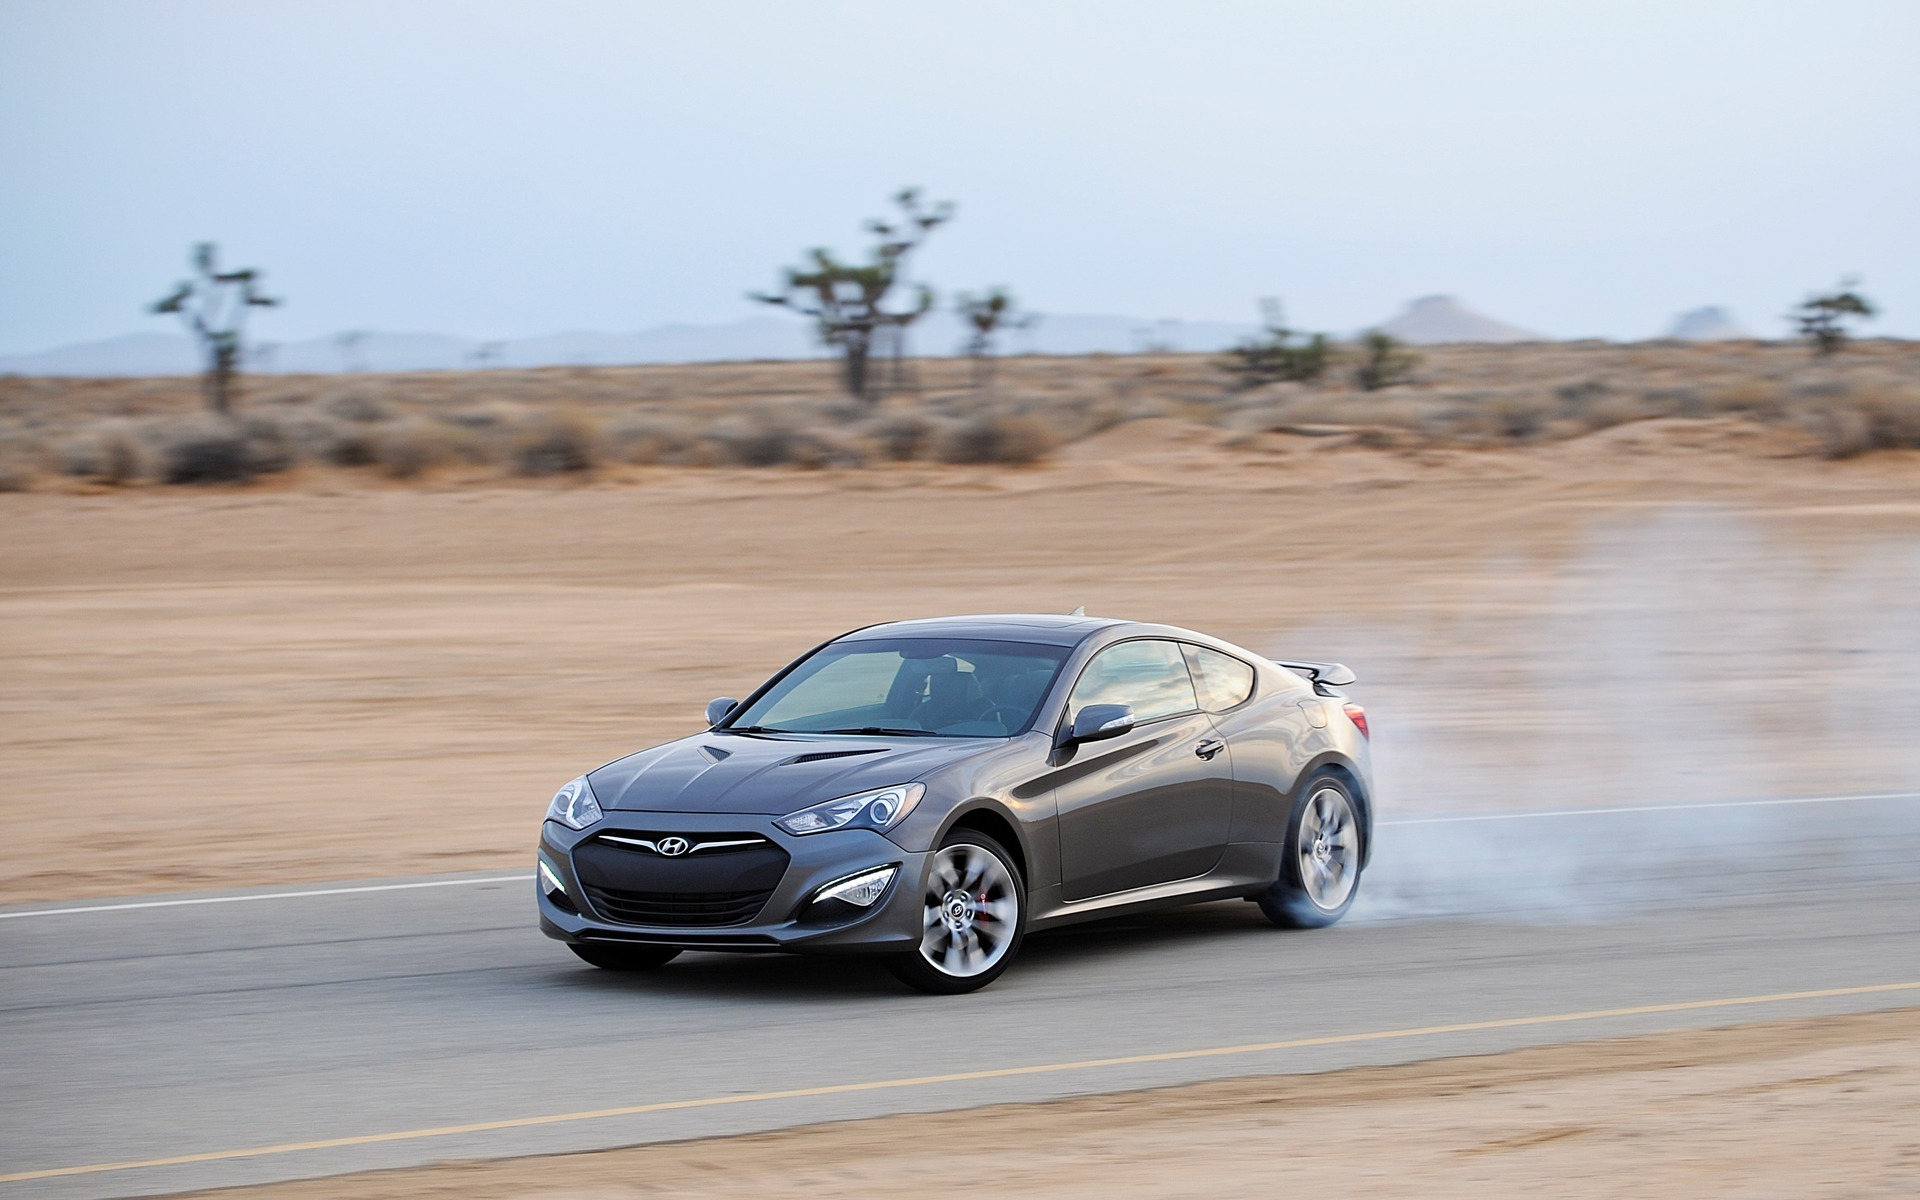 Hyundai Genesis Coupe 3.8 R Spec. One Of The Fastest Cars Under 30K ...